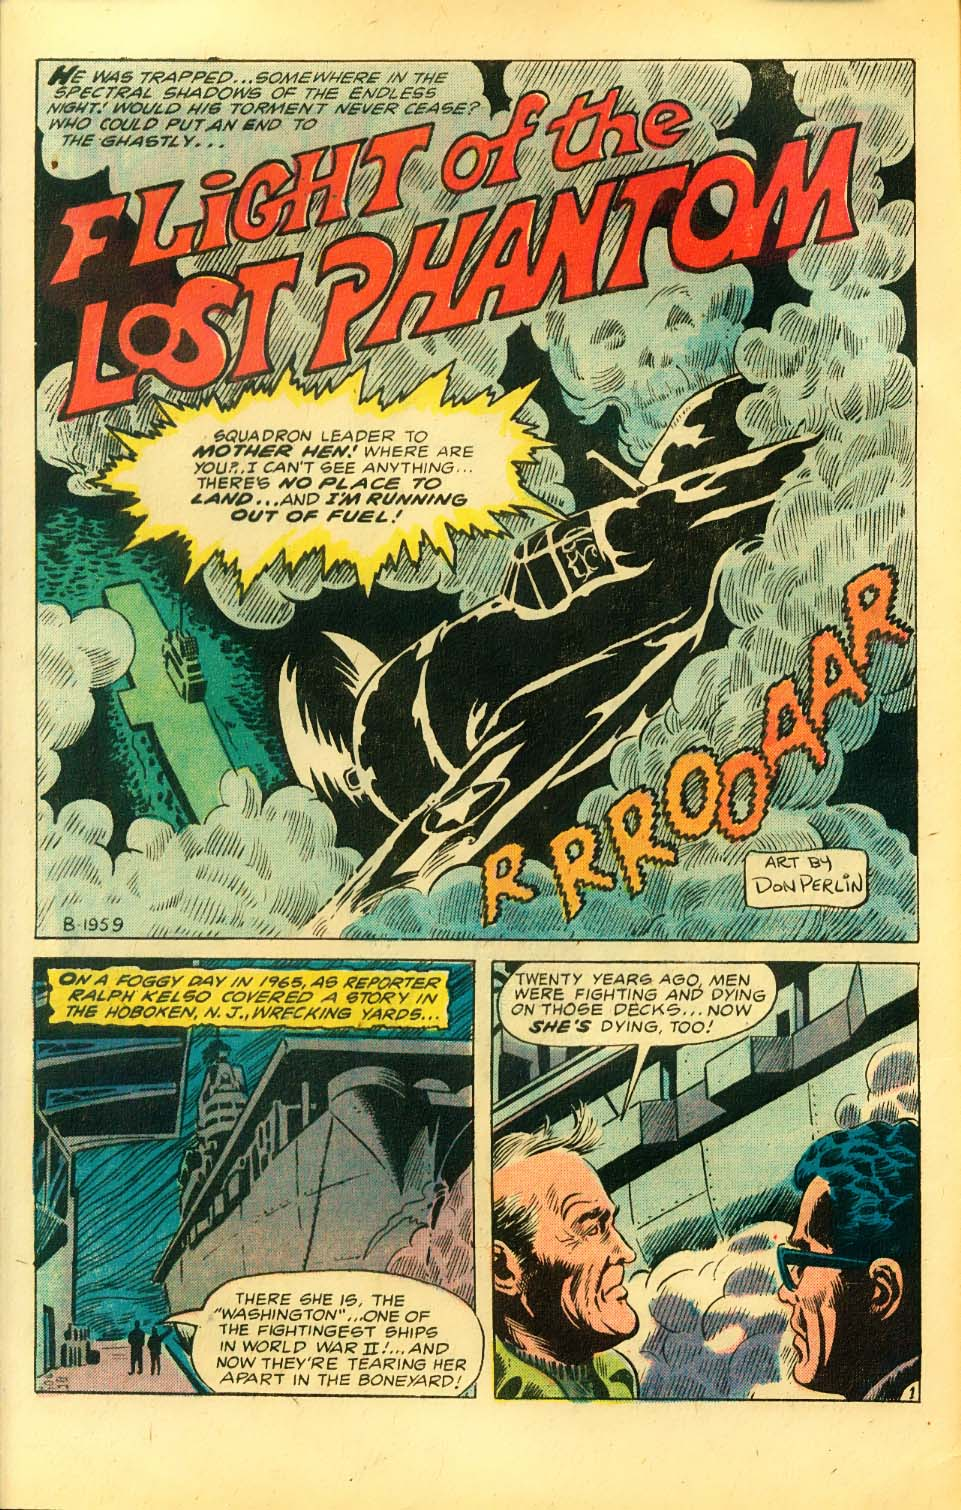 """ Flight of the Lost Phantom "" from  Ghosts (1971) #28 . Art by Don Perlin."